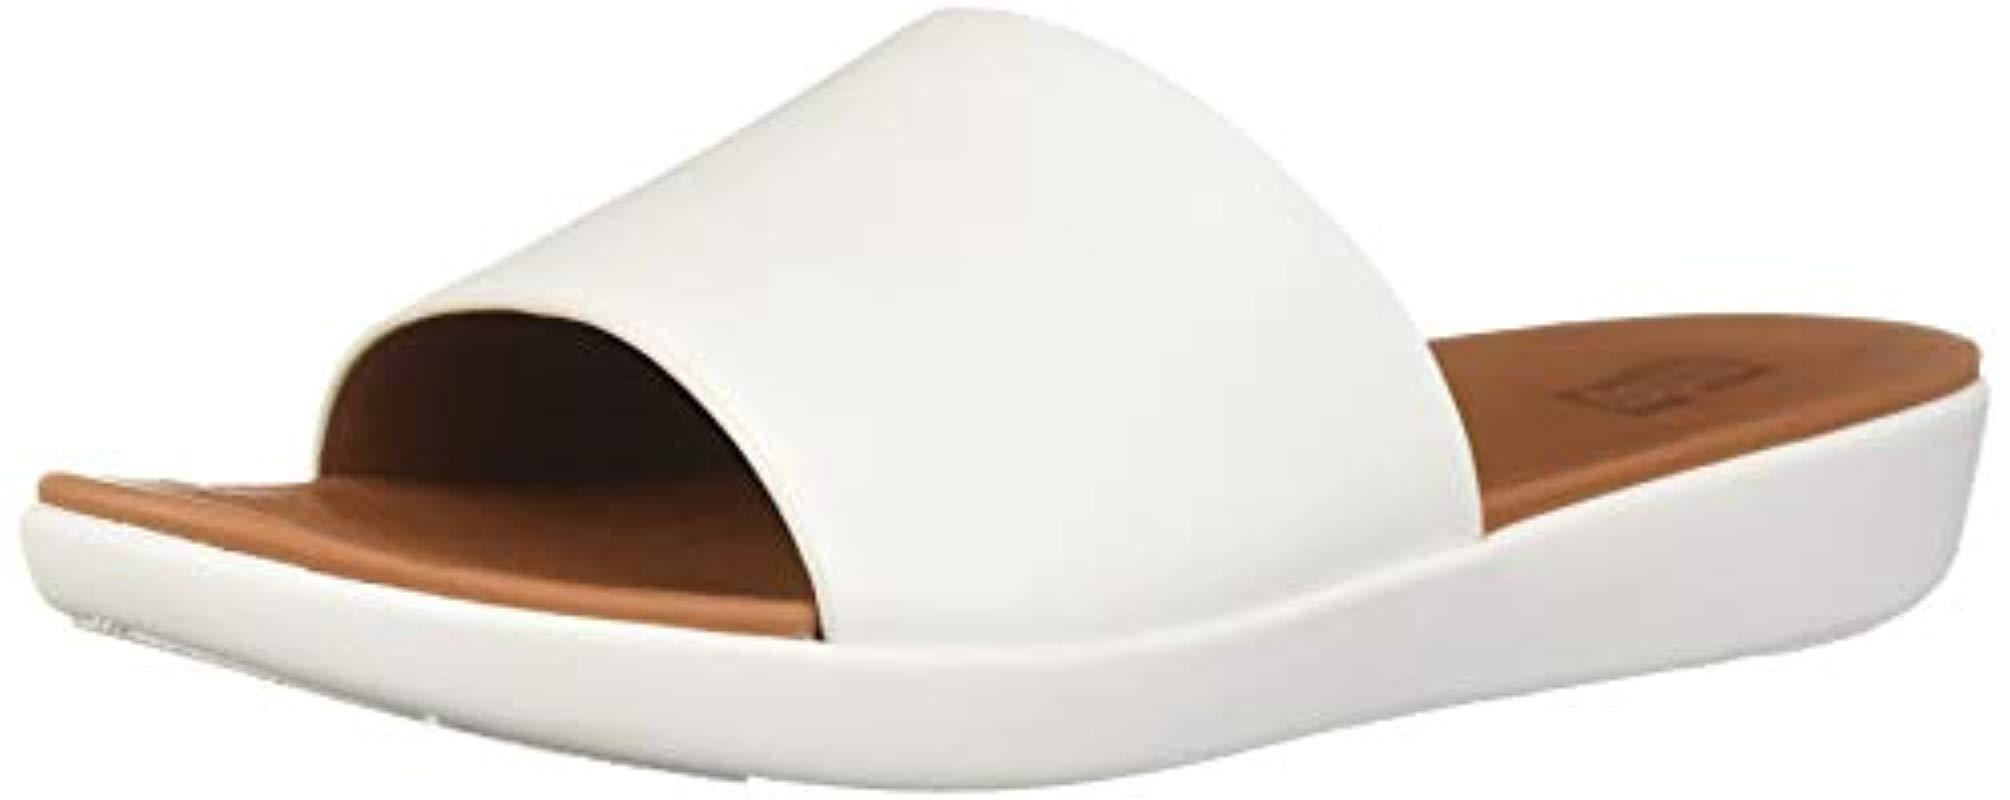 9669332f6e5 Lyst - Fitflop Sola in White